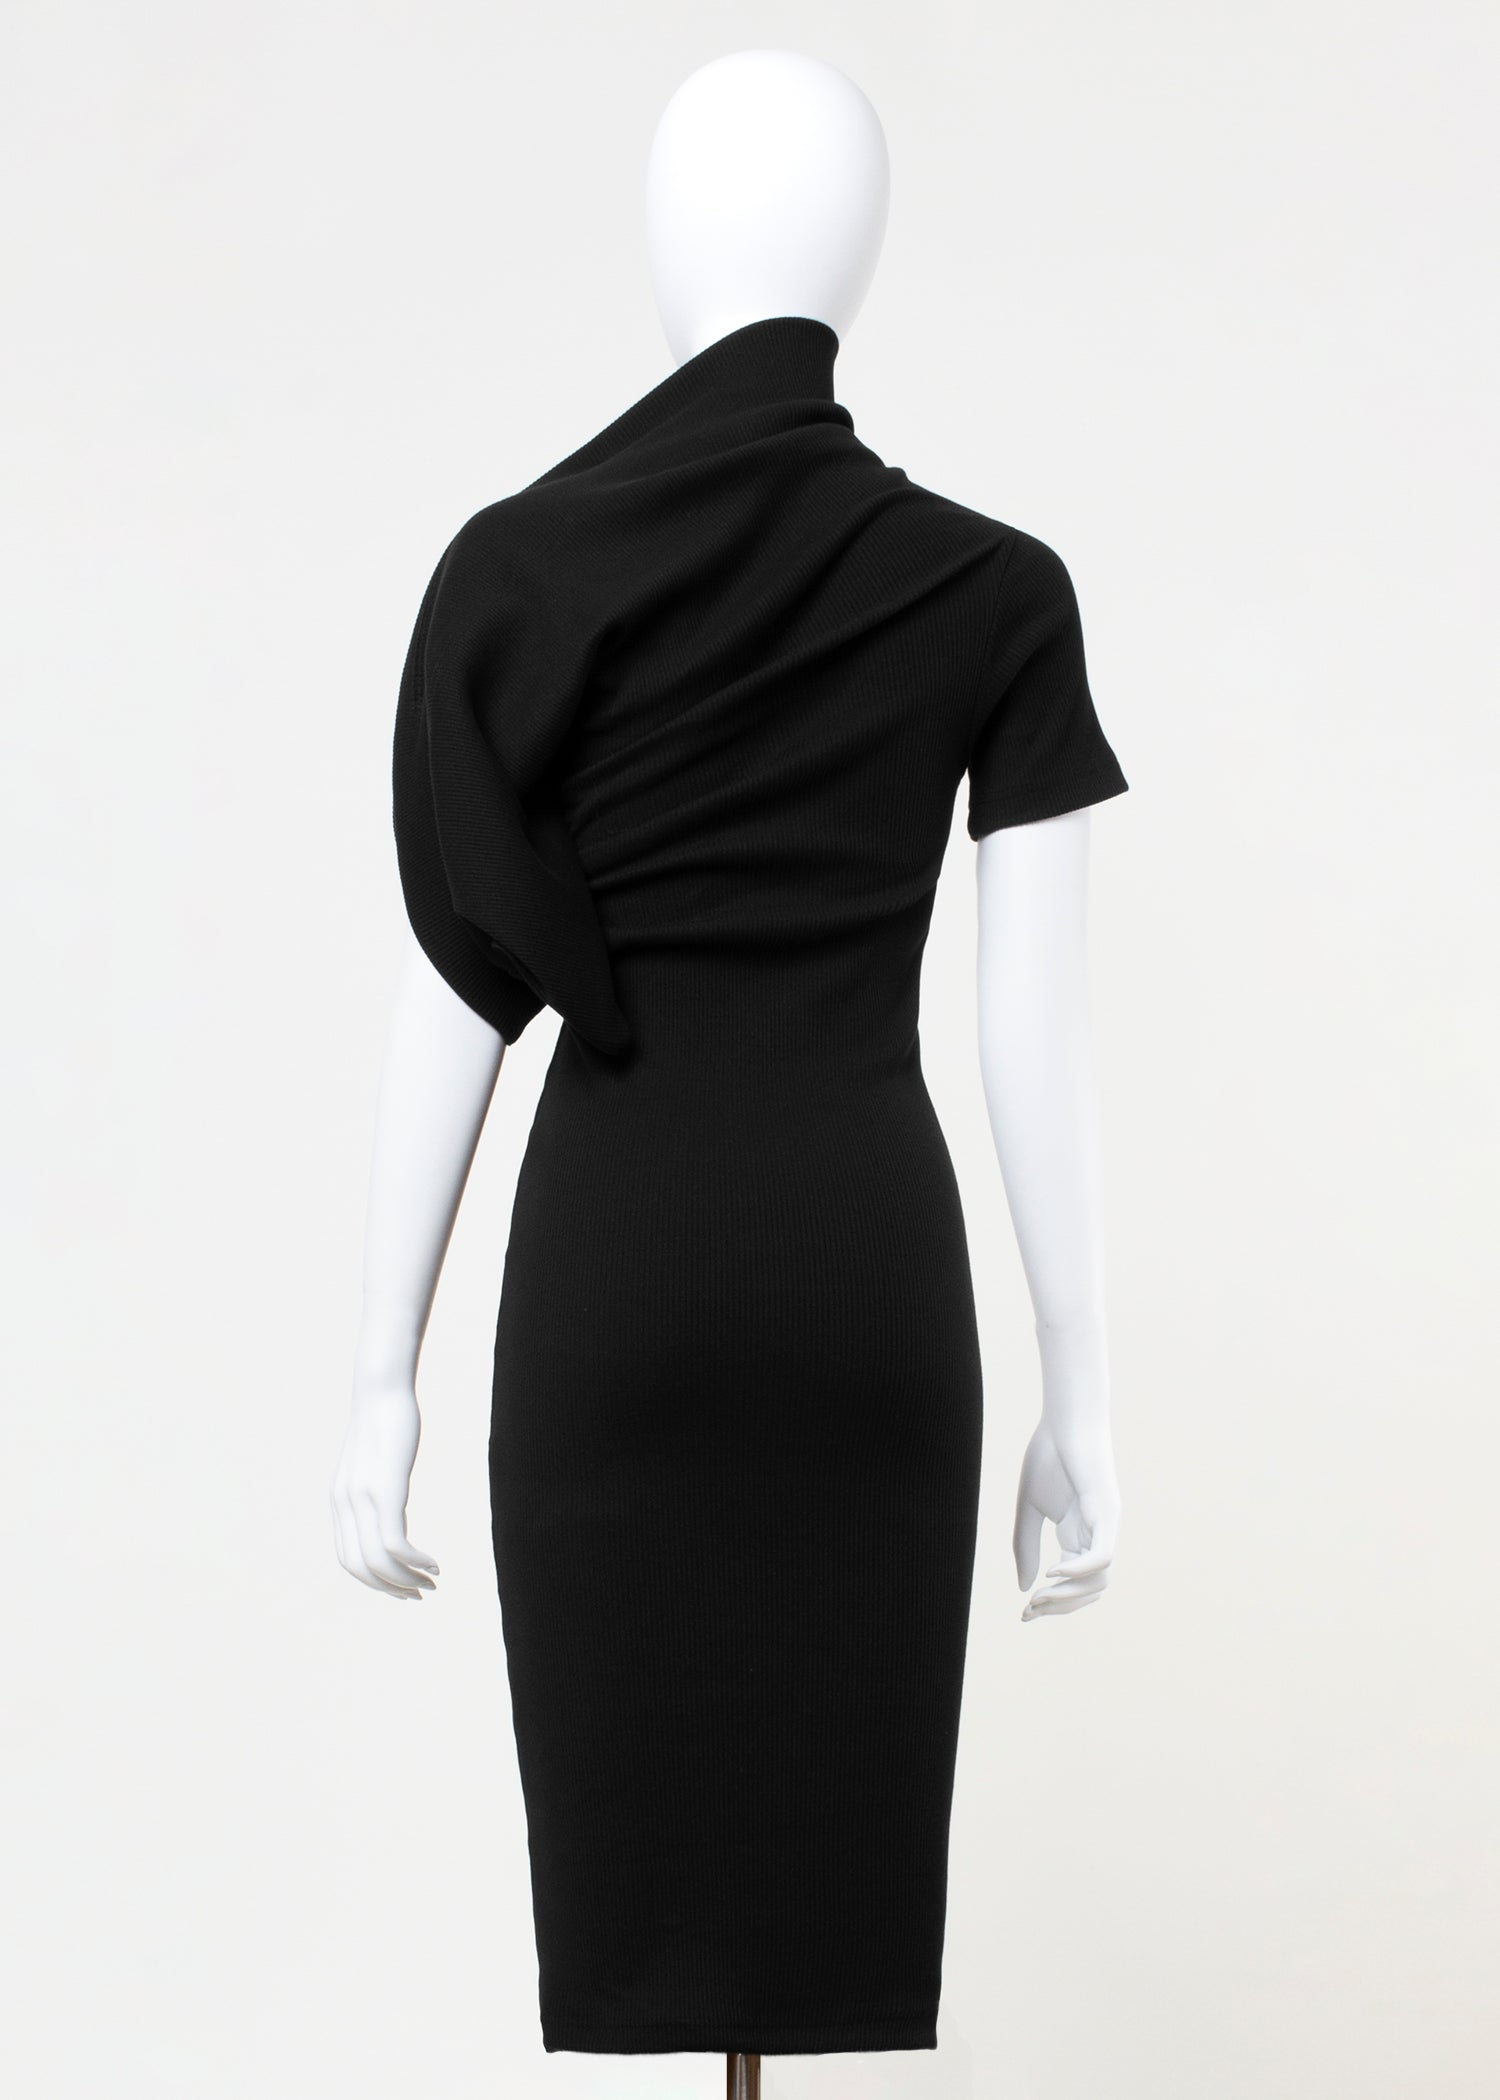 penn dress - ribbed black